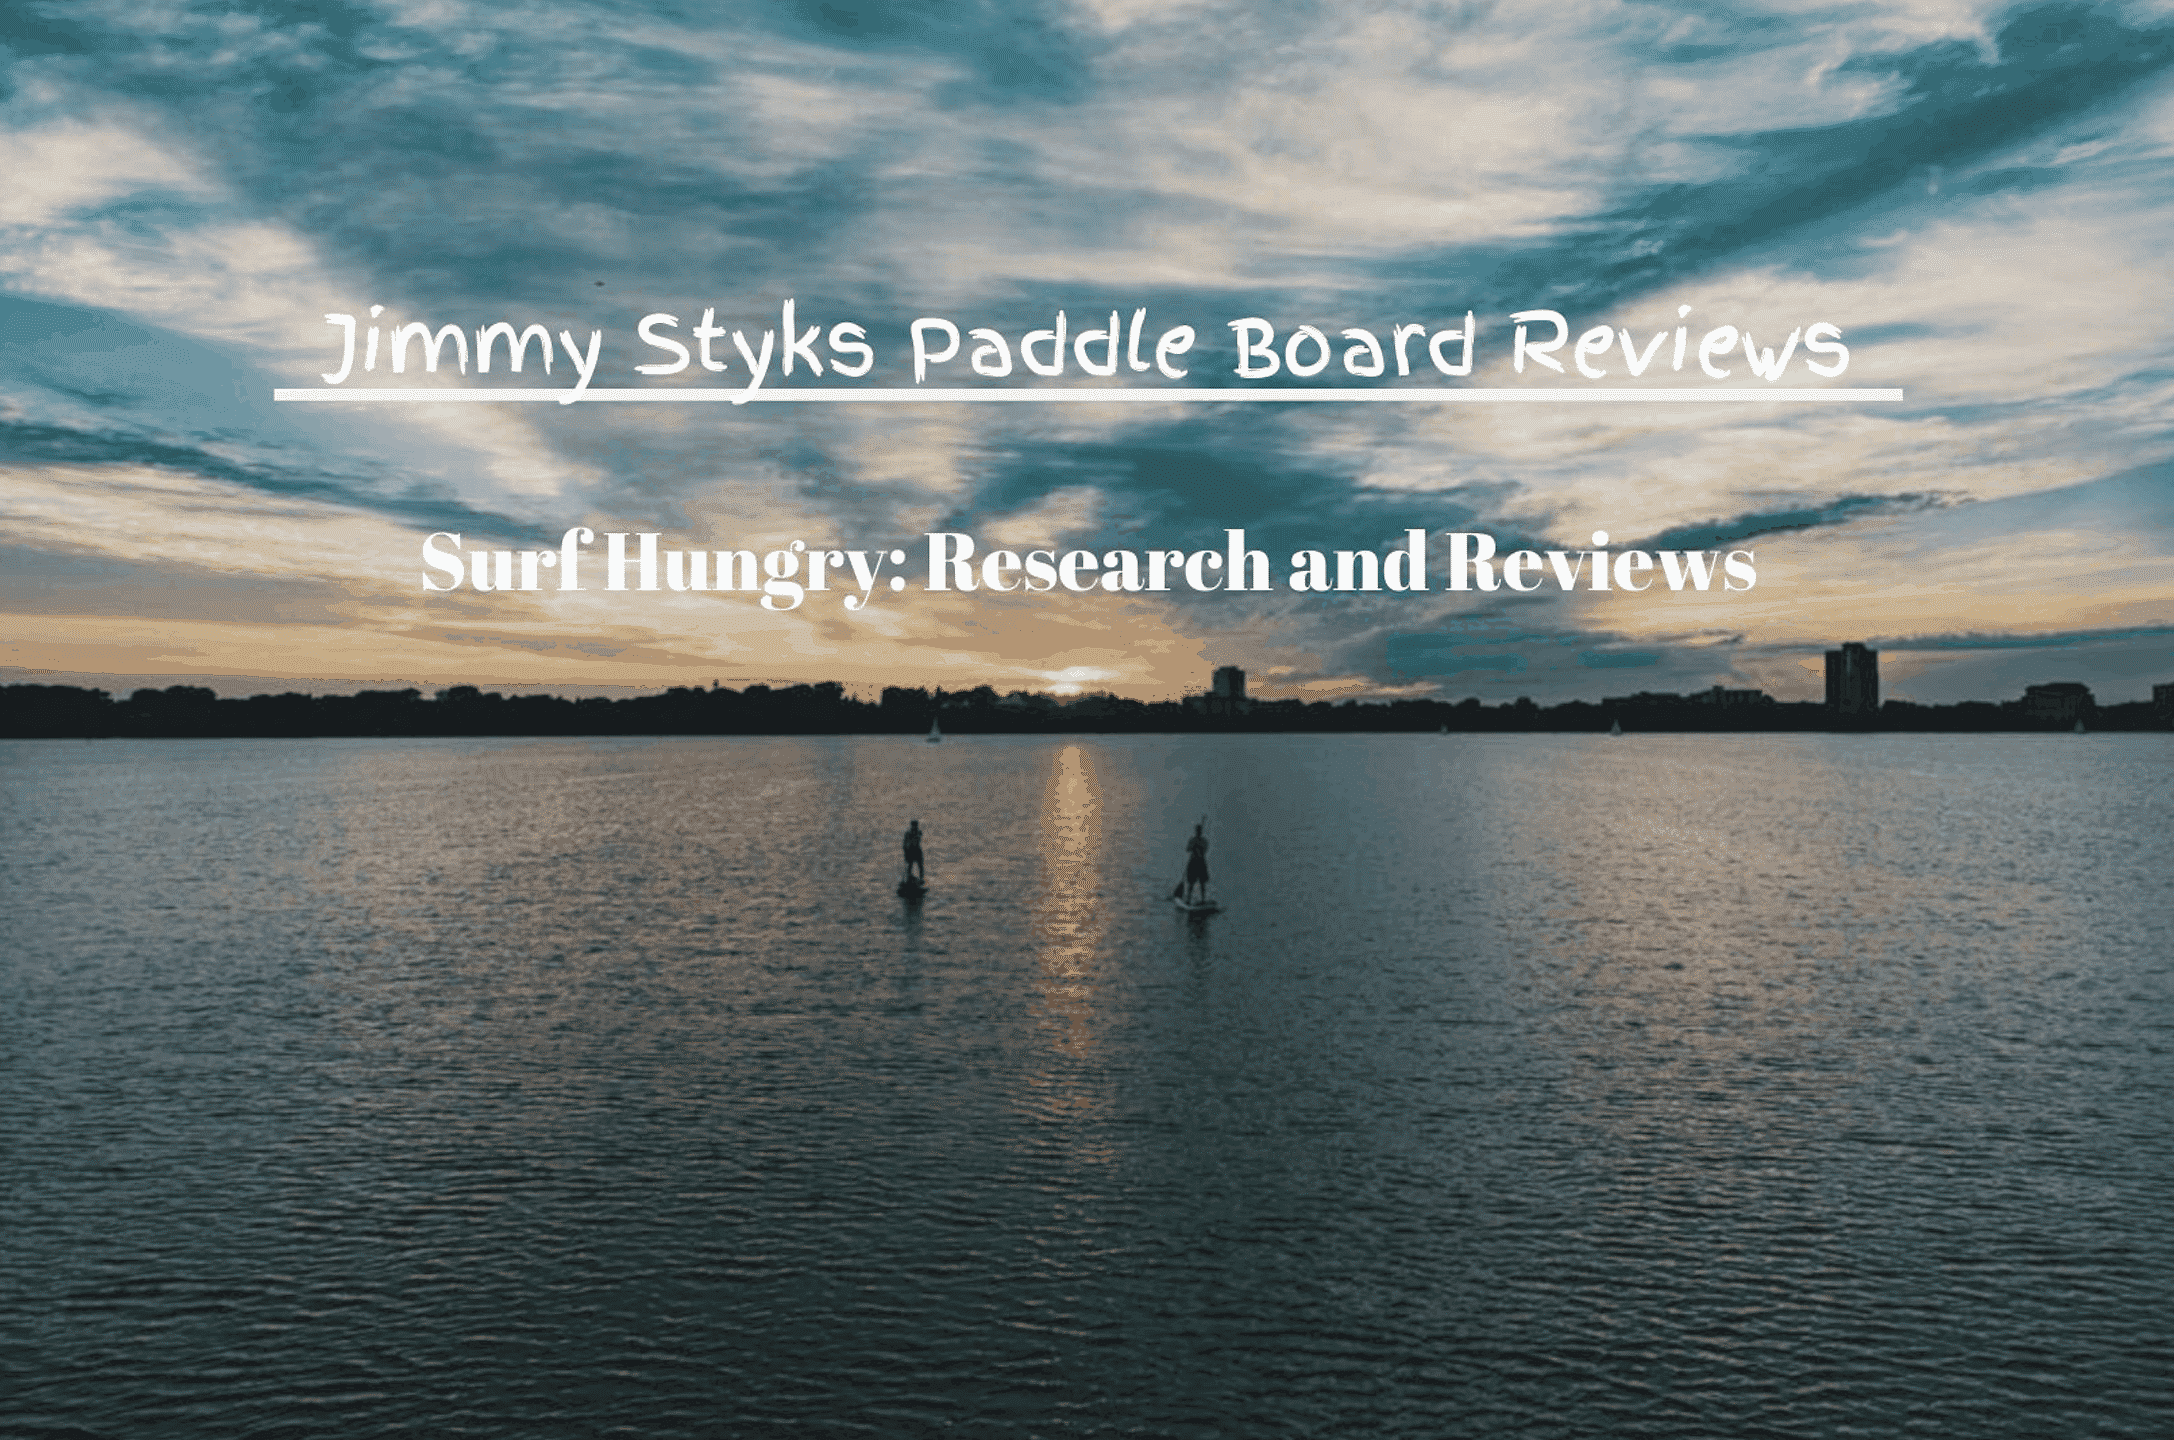 jimmy styks paddle board reviews